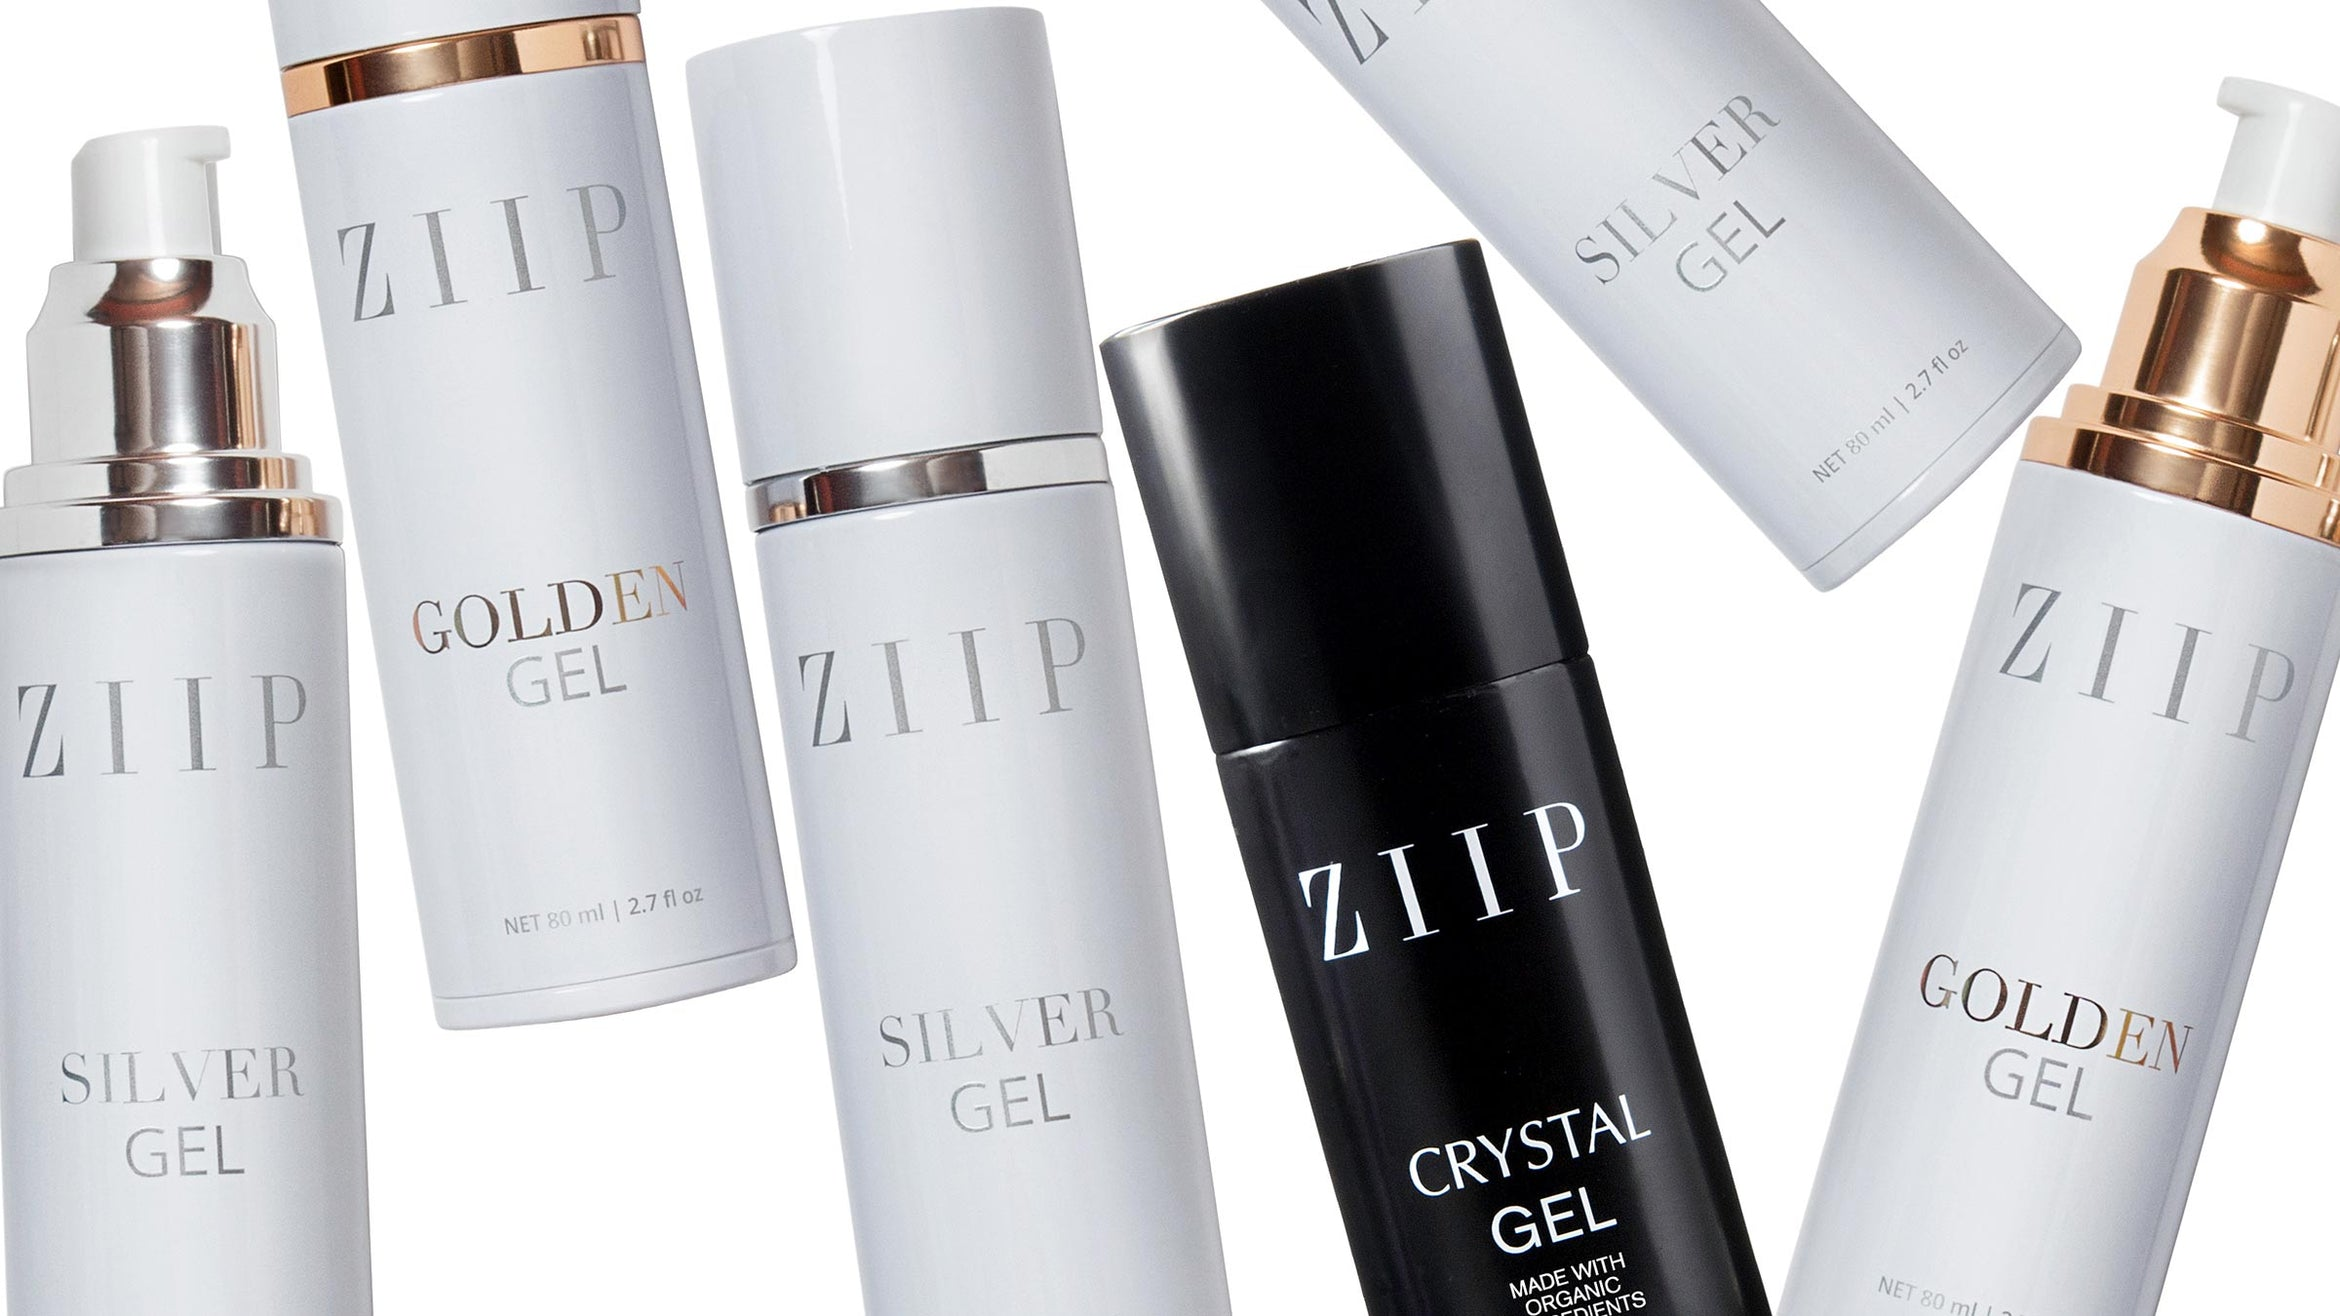 Bottles of ZIIP Golden Gel, Silver Gel, and Crystal Gel displayed